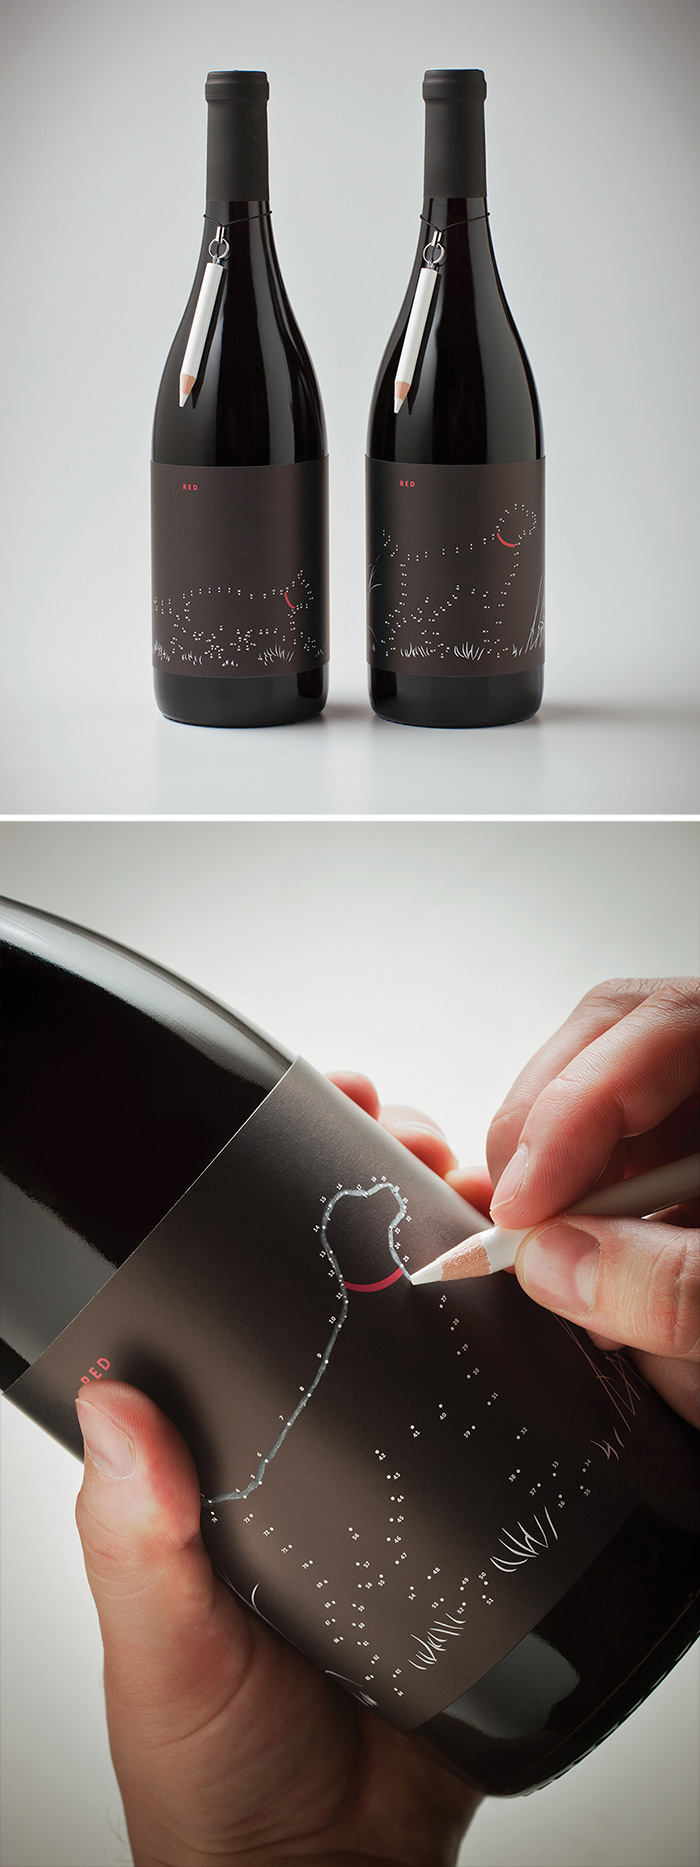 Creative-Food-Packaging-Ideas-11-5948eddf2dac9__700.jpg